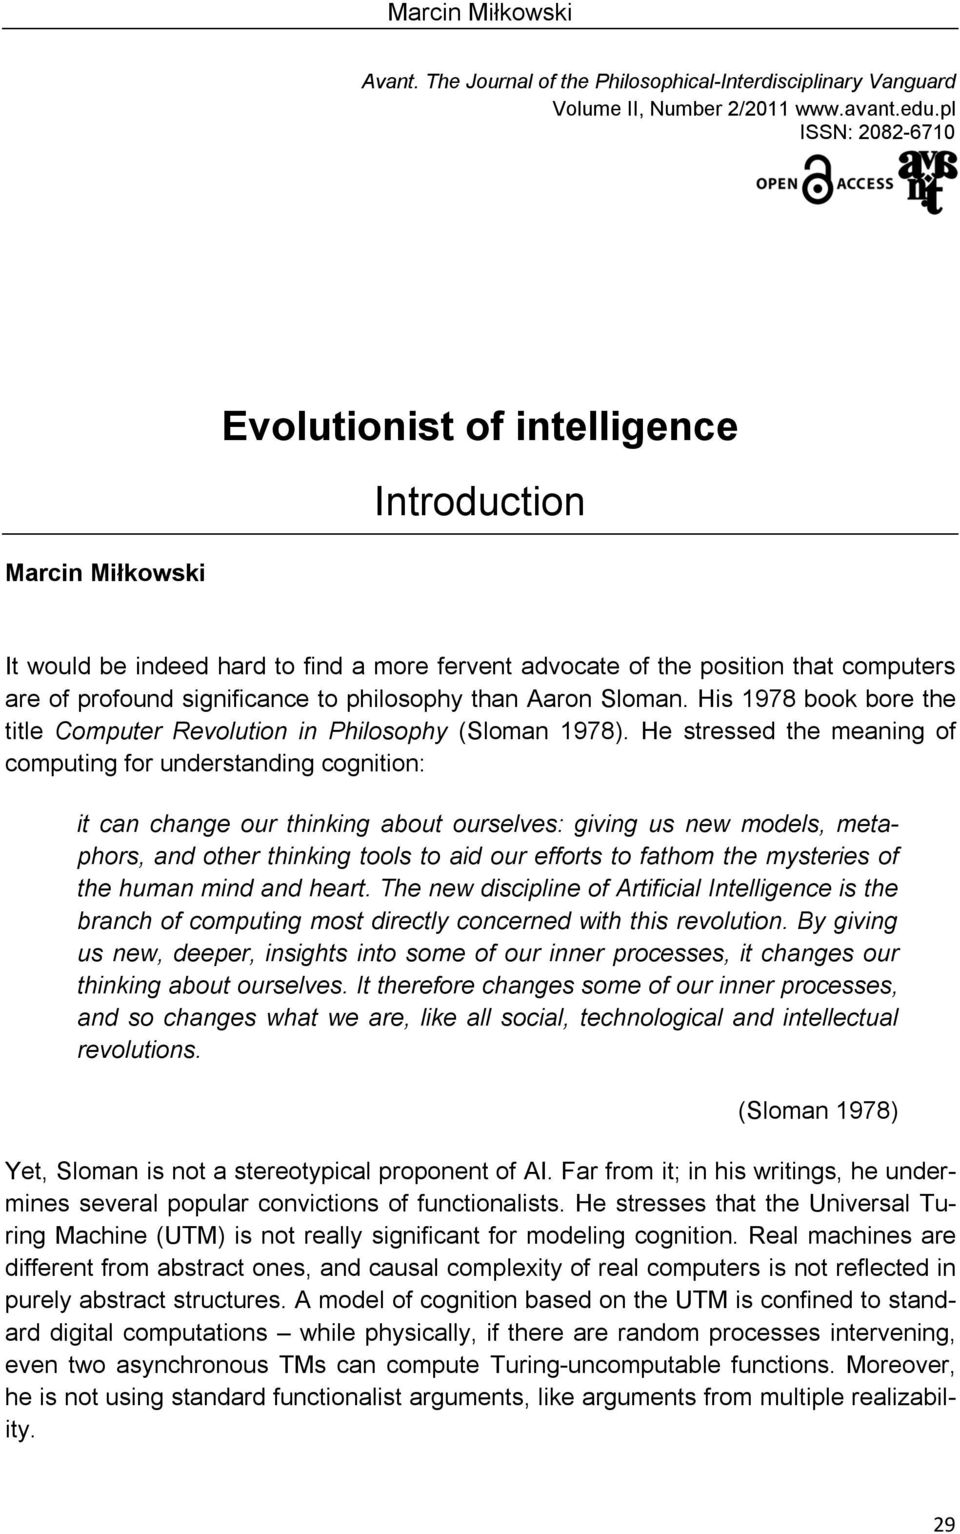 philosophy than Aaron Sloman. His 1978 book bore the title Computer Revolution in Philosophy (Sloman 1978).